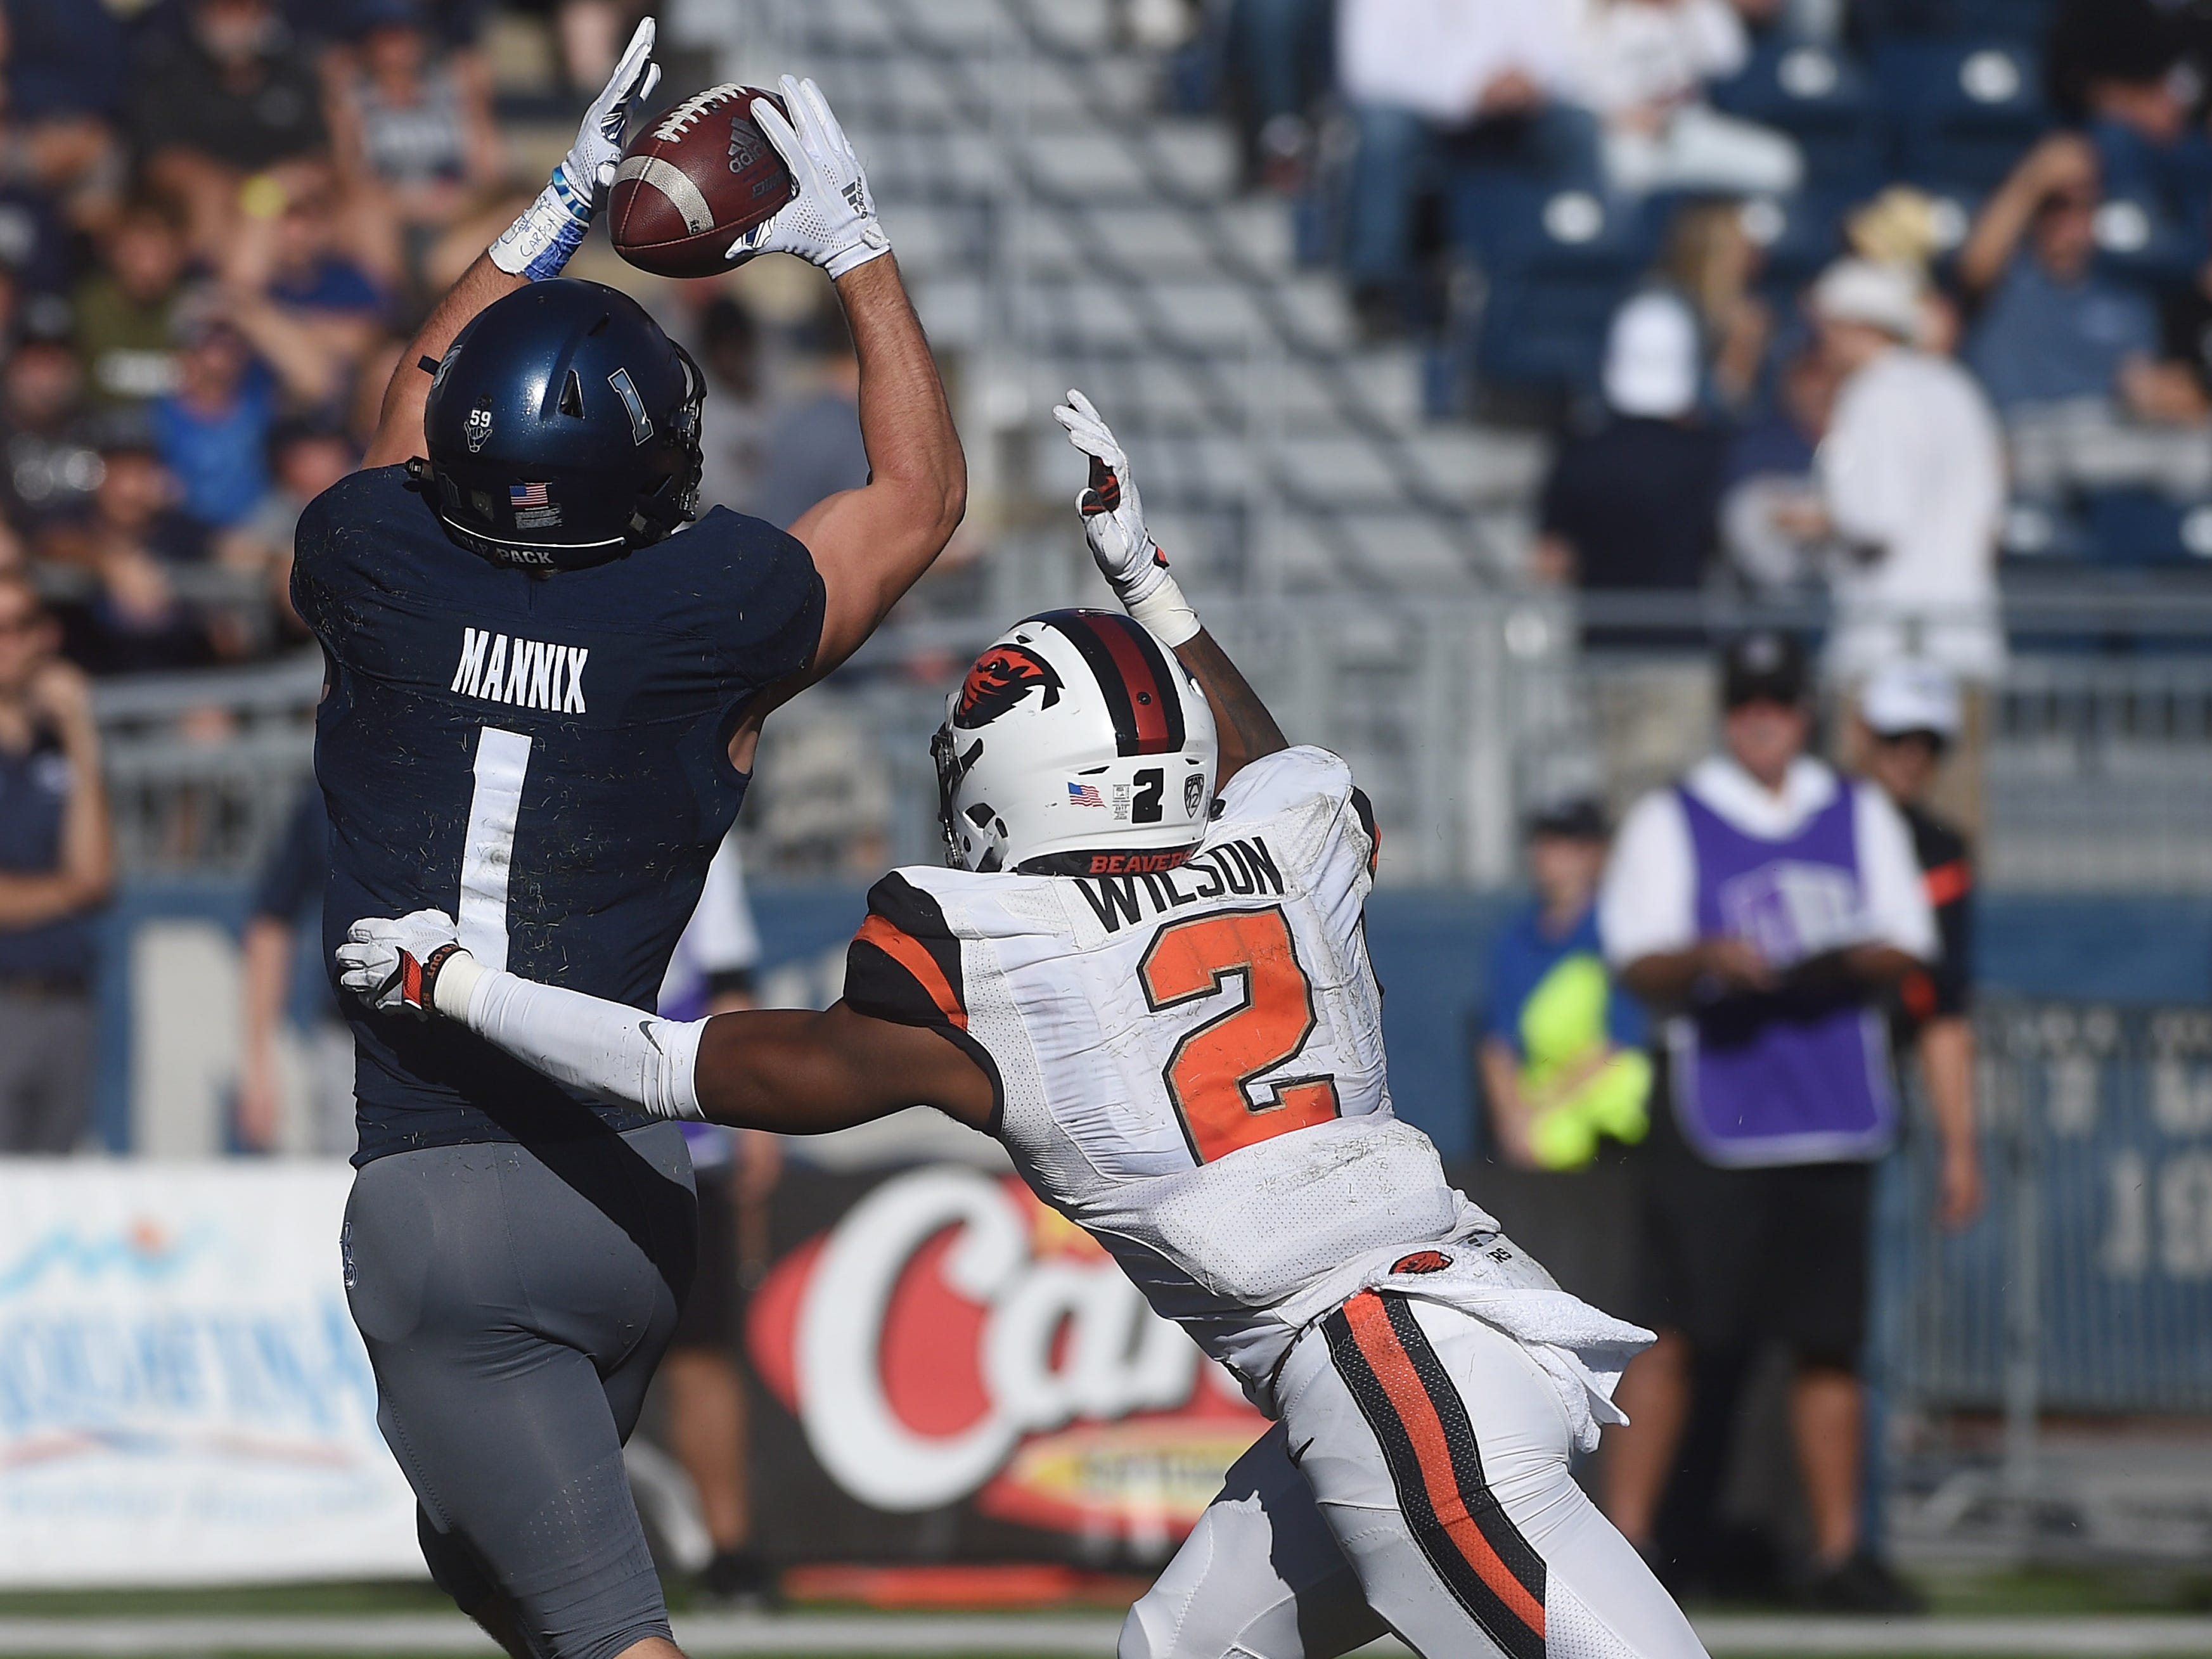 Nevada's McLane Mannix (1) catches a touchdown pass against Oregon State's Shawn Wilson during their football game at Mackay Stadium in Reno on Sept. 15, 2018.